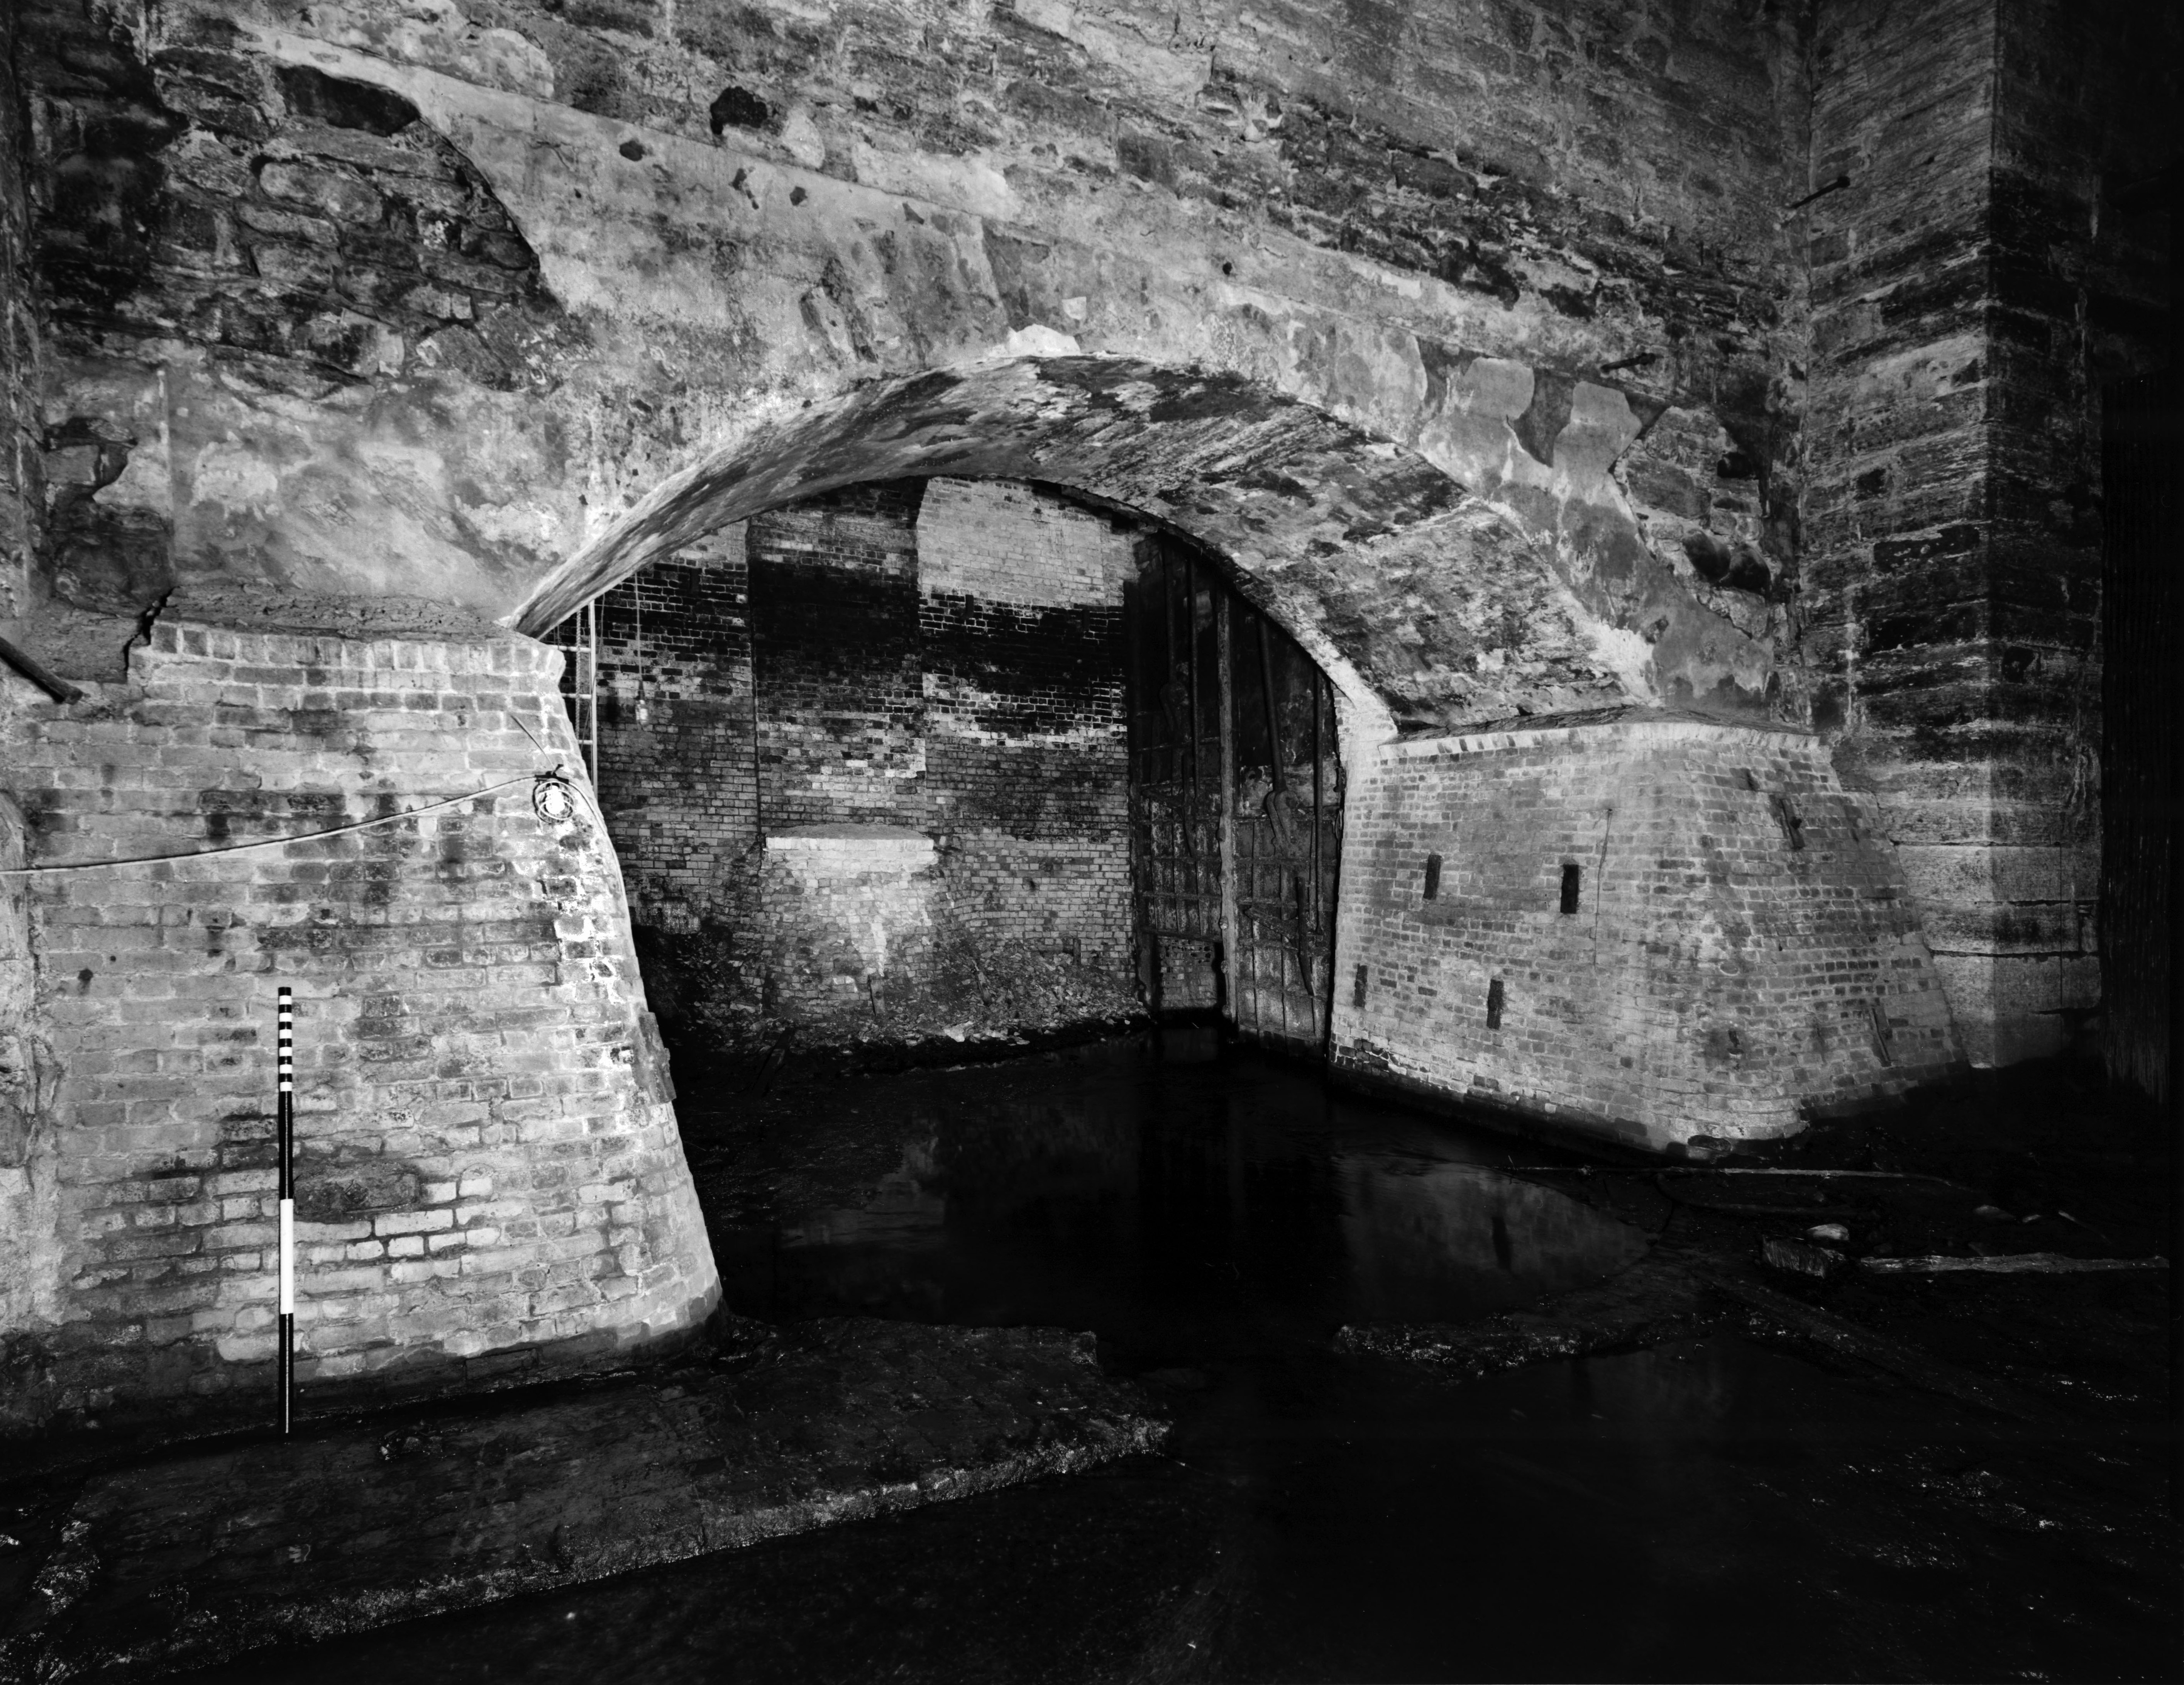 Forebay arch at headrace tunnel terminus - MHRP HE-MPC-9995-16 (Please credit Daniel R. Pratt and the Historic American Buildings Survey)